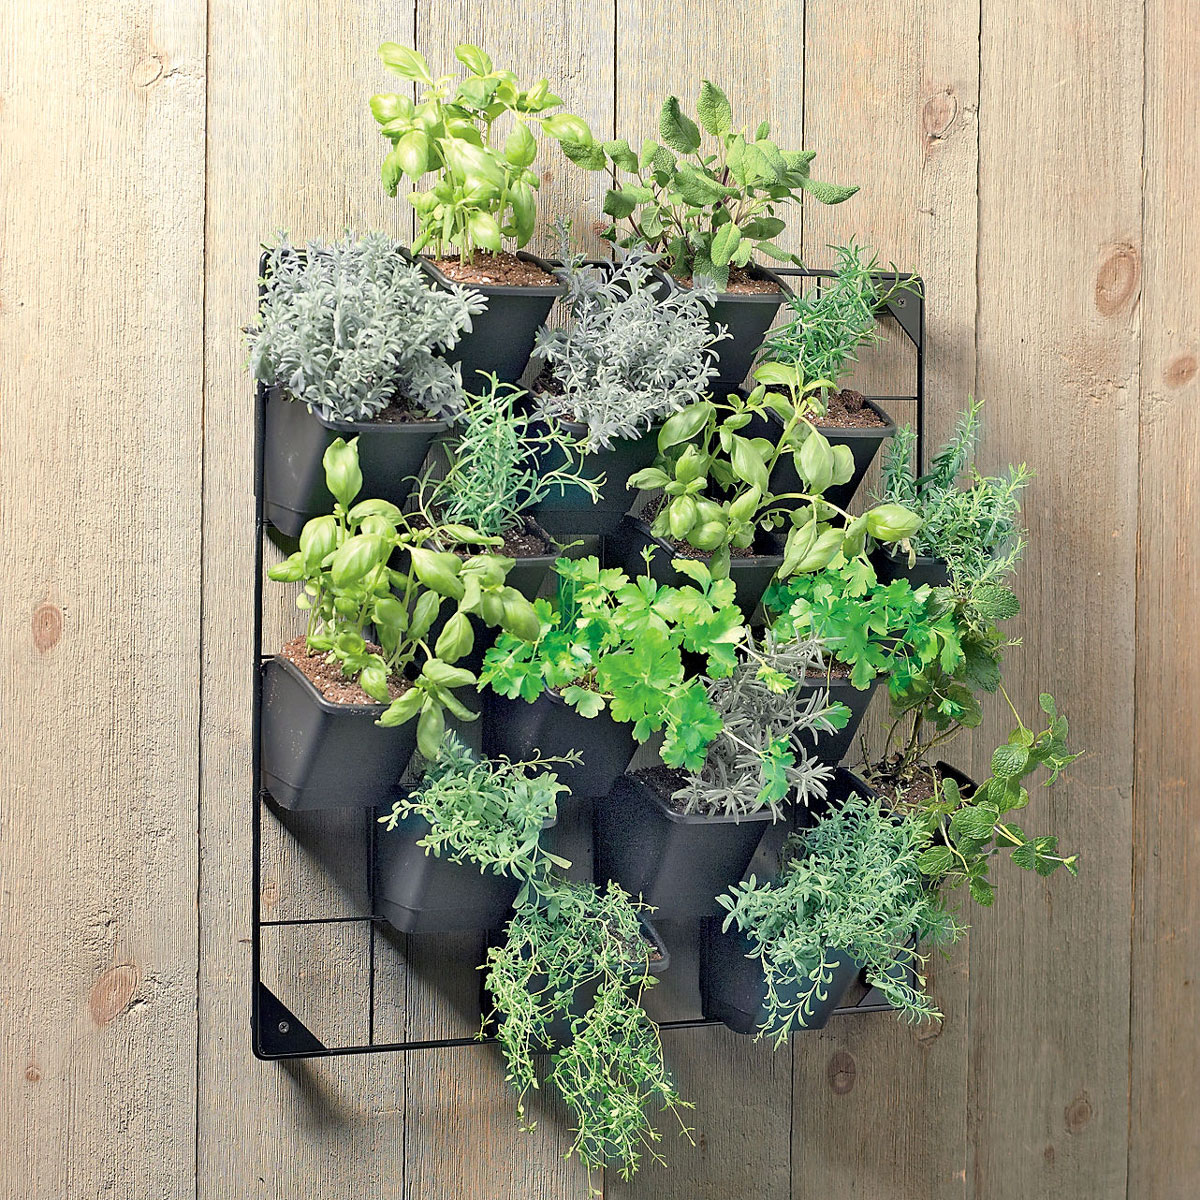 Vertikal Gardinen Vertical Wall Garden The Green Head